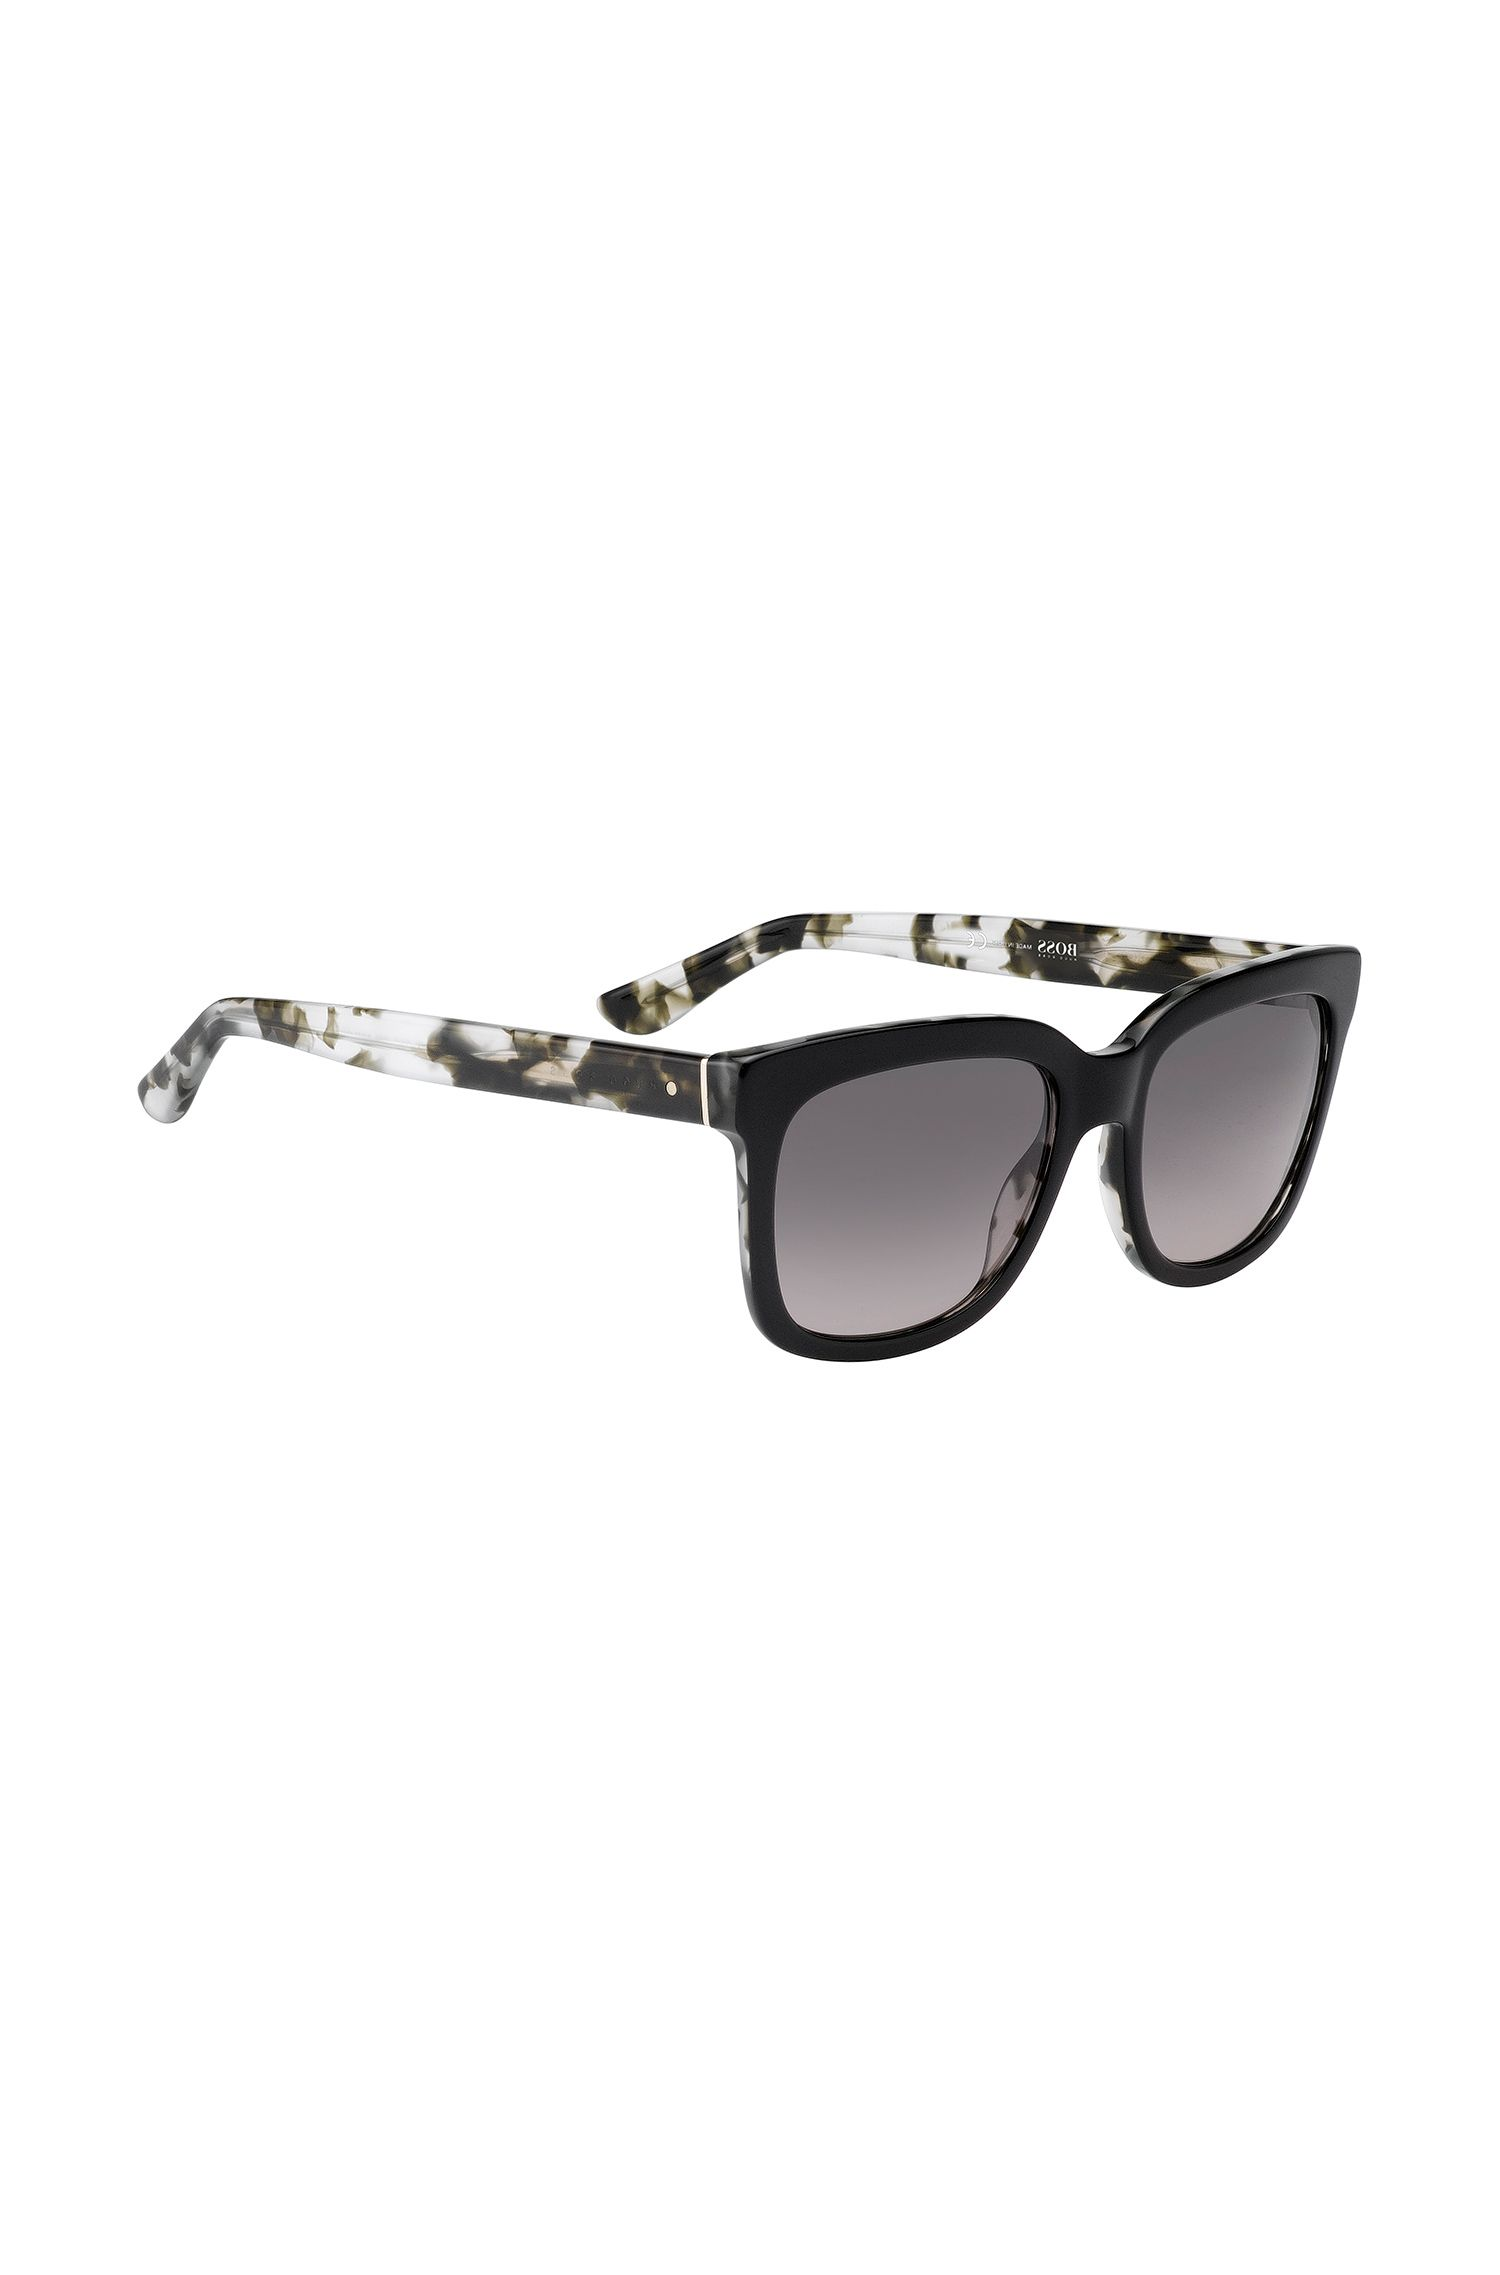 Gafas de sol: 'BOSS 0741/S', Assorted-Pre-Pack